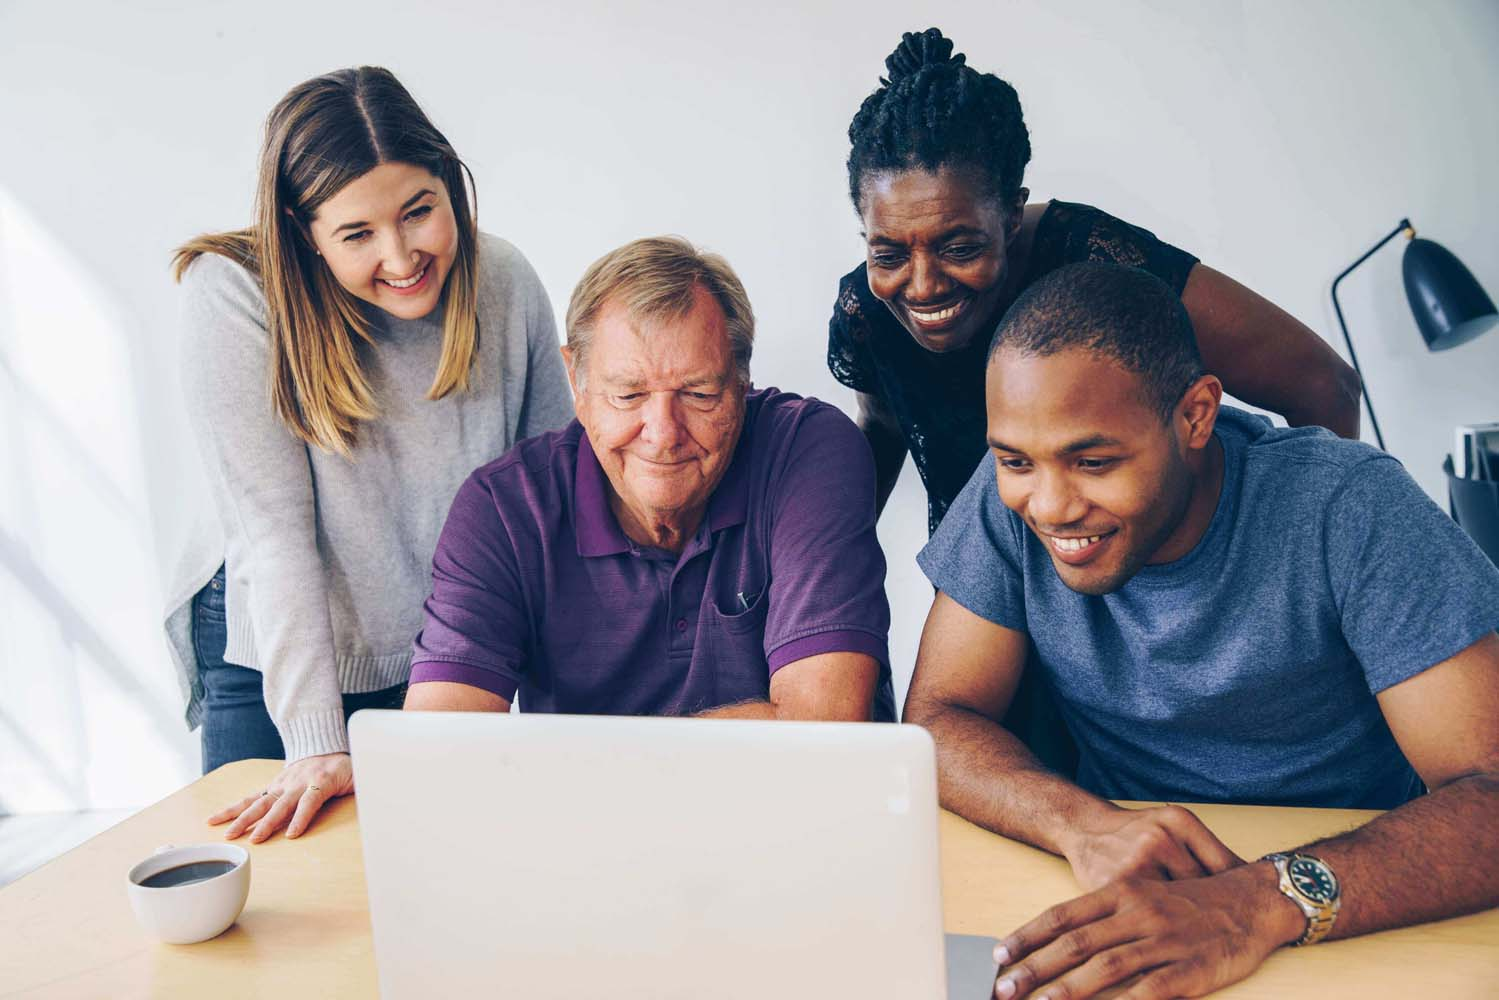 Diverse group of people interacting with laptop